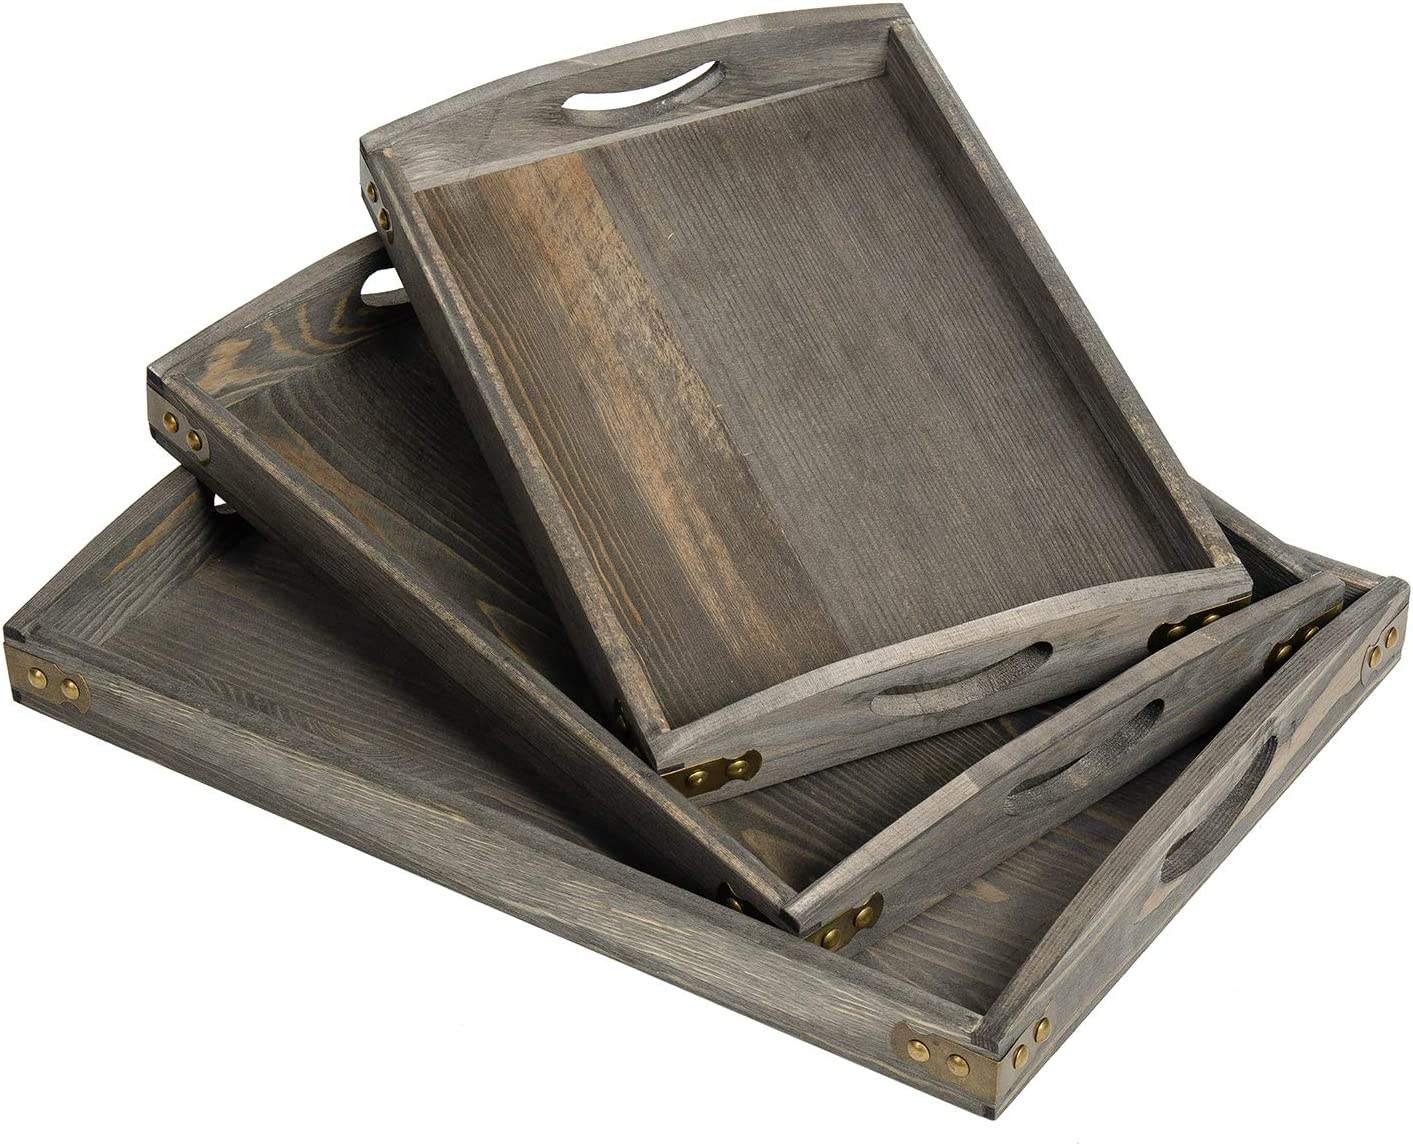 VERGOODR Country Rustic Wood Nesting Dinning Breakfast Serving Trays with Wood Handles, Set of 3,Can Put Food, Fruit, Plates (Rock Grey)